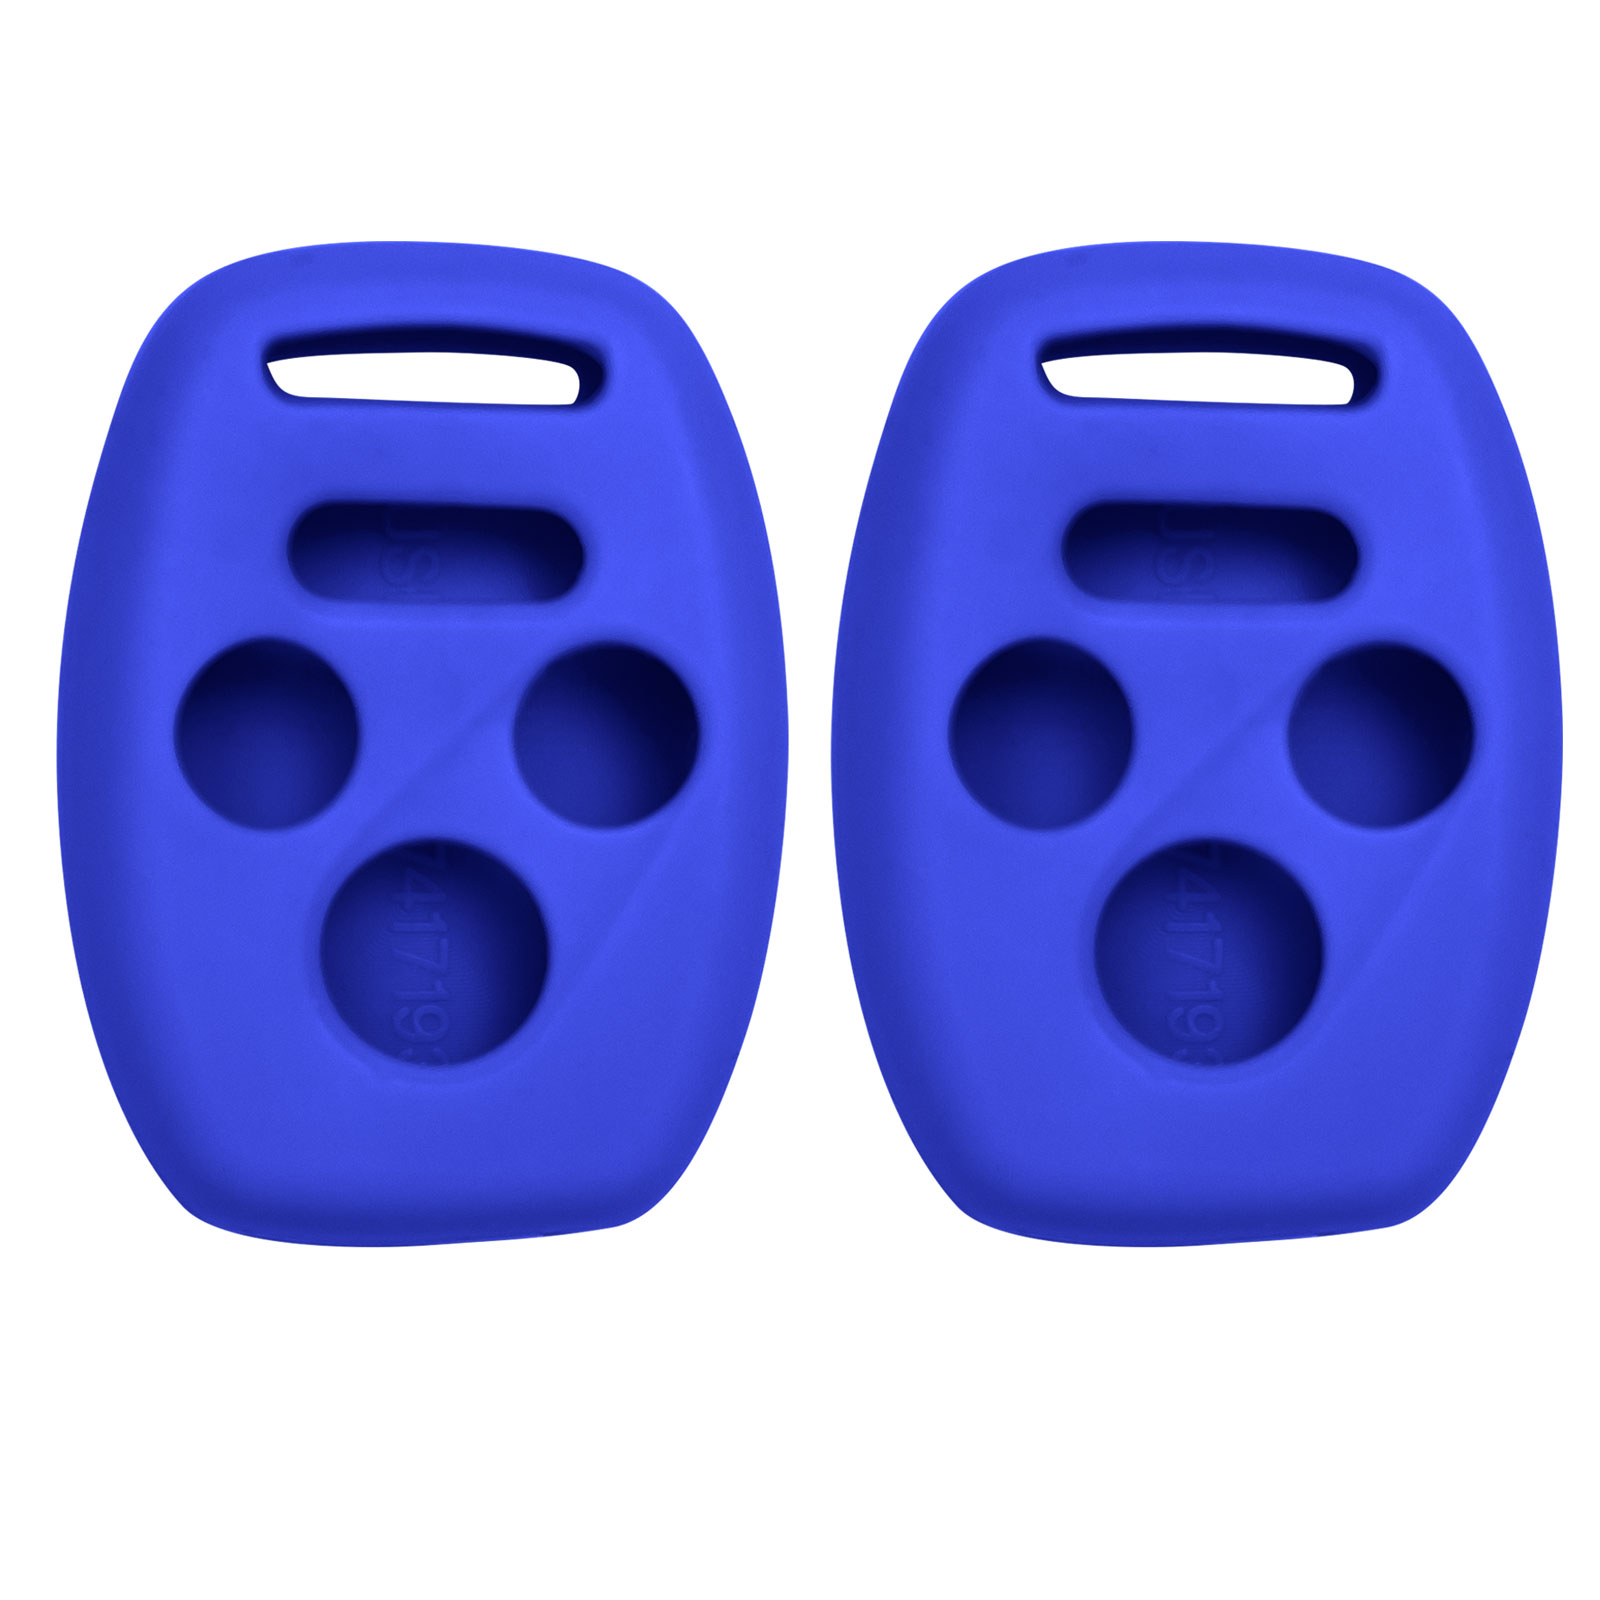 Keyless2Go New Silicone Cover Protective Cases for 4 Button Remote Keys KR55WK49308 MLBHLIK-1T OUCG8D-380H-A (2 Pack)